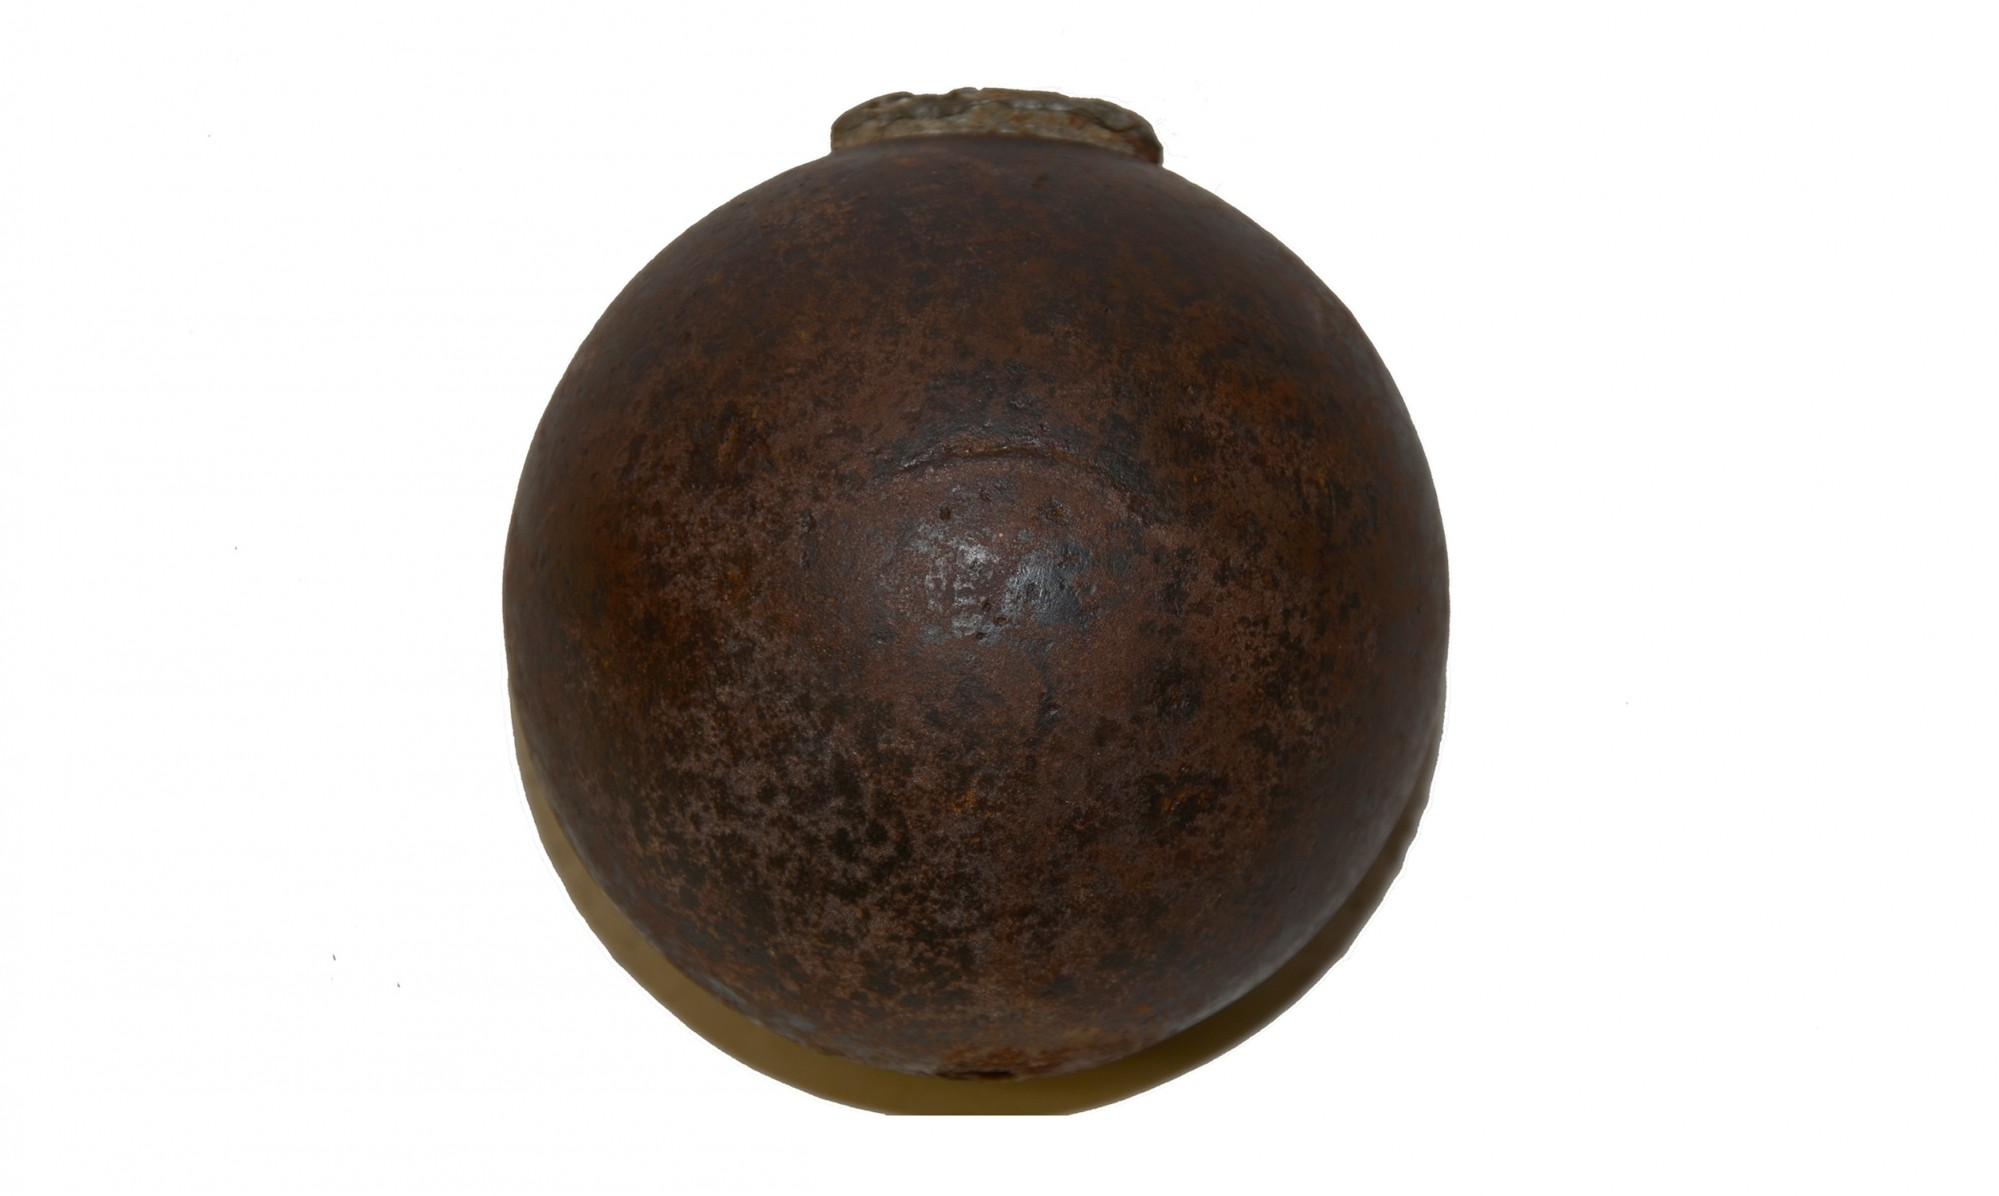 US 4.52 INCH 12 POUNDER BORMANN FUSED SPHERICAL SHELL